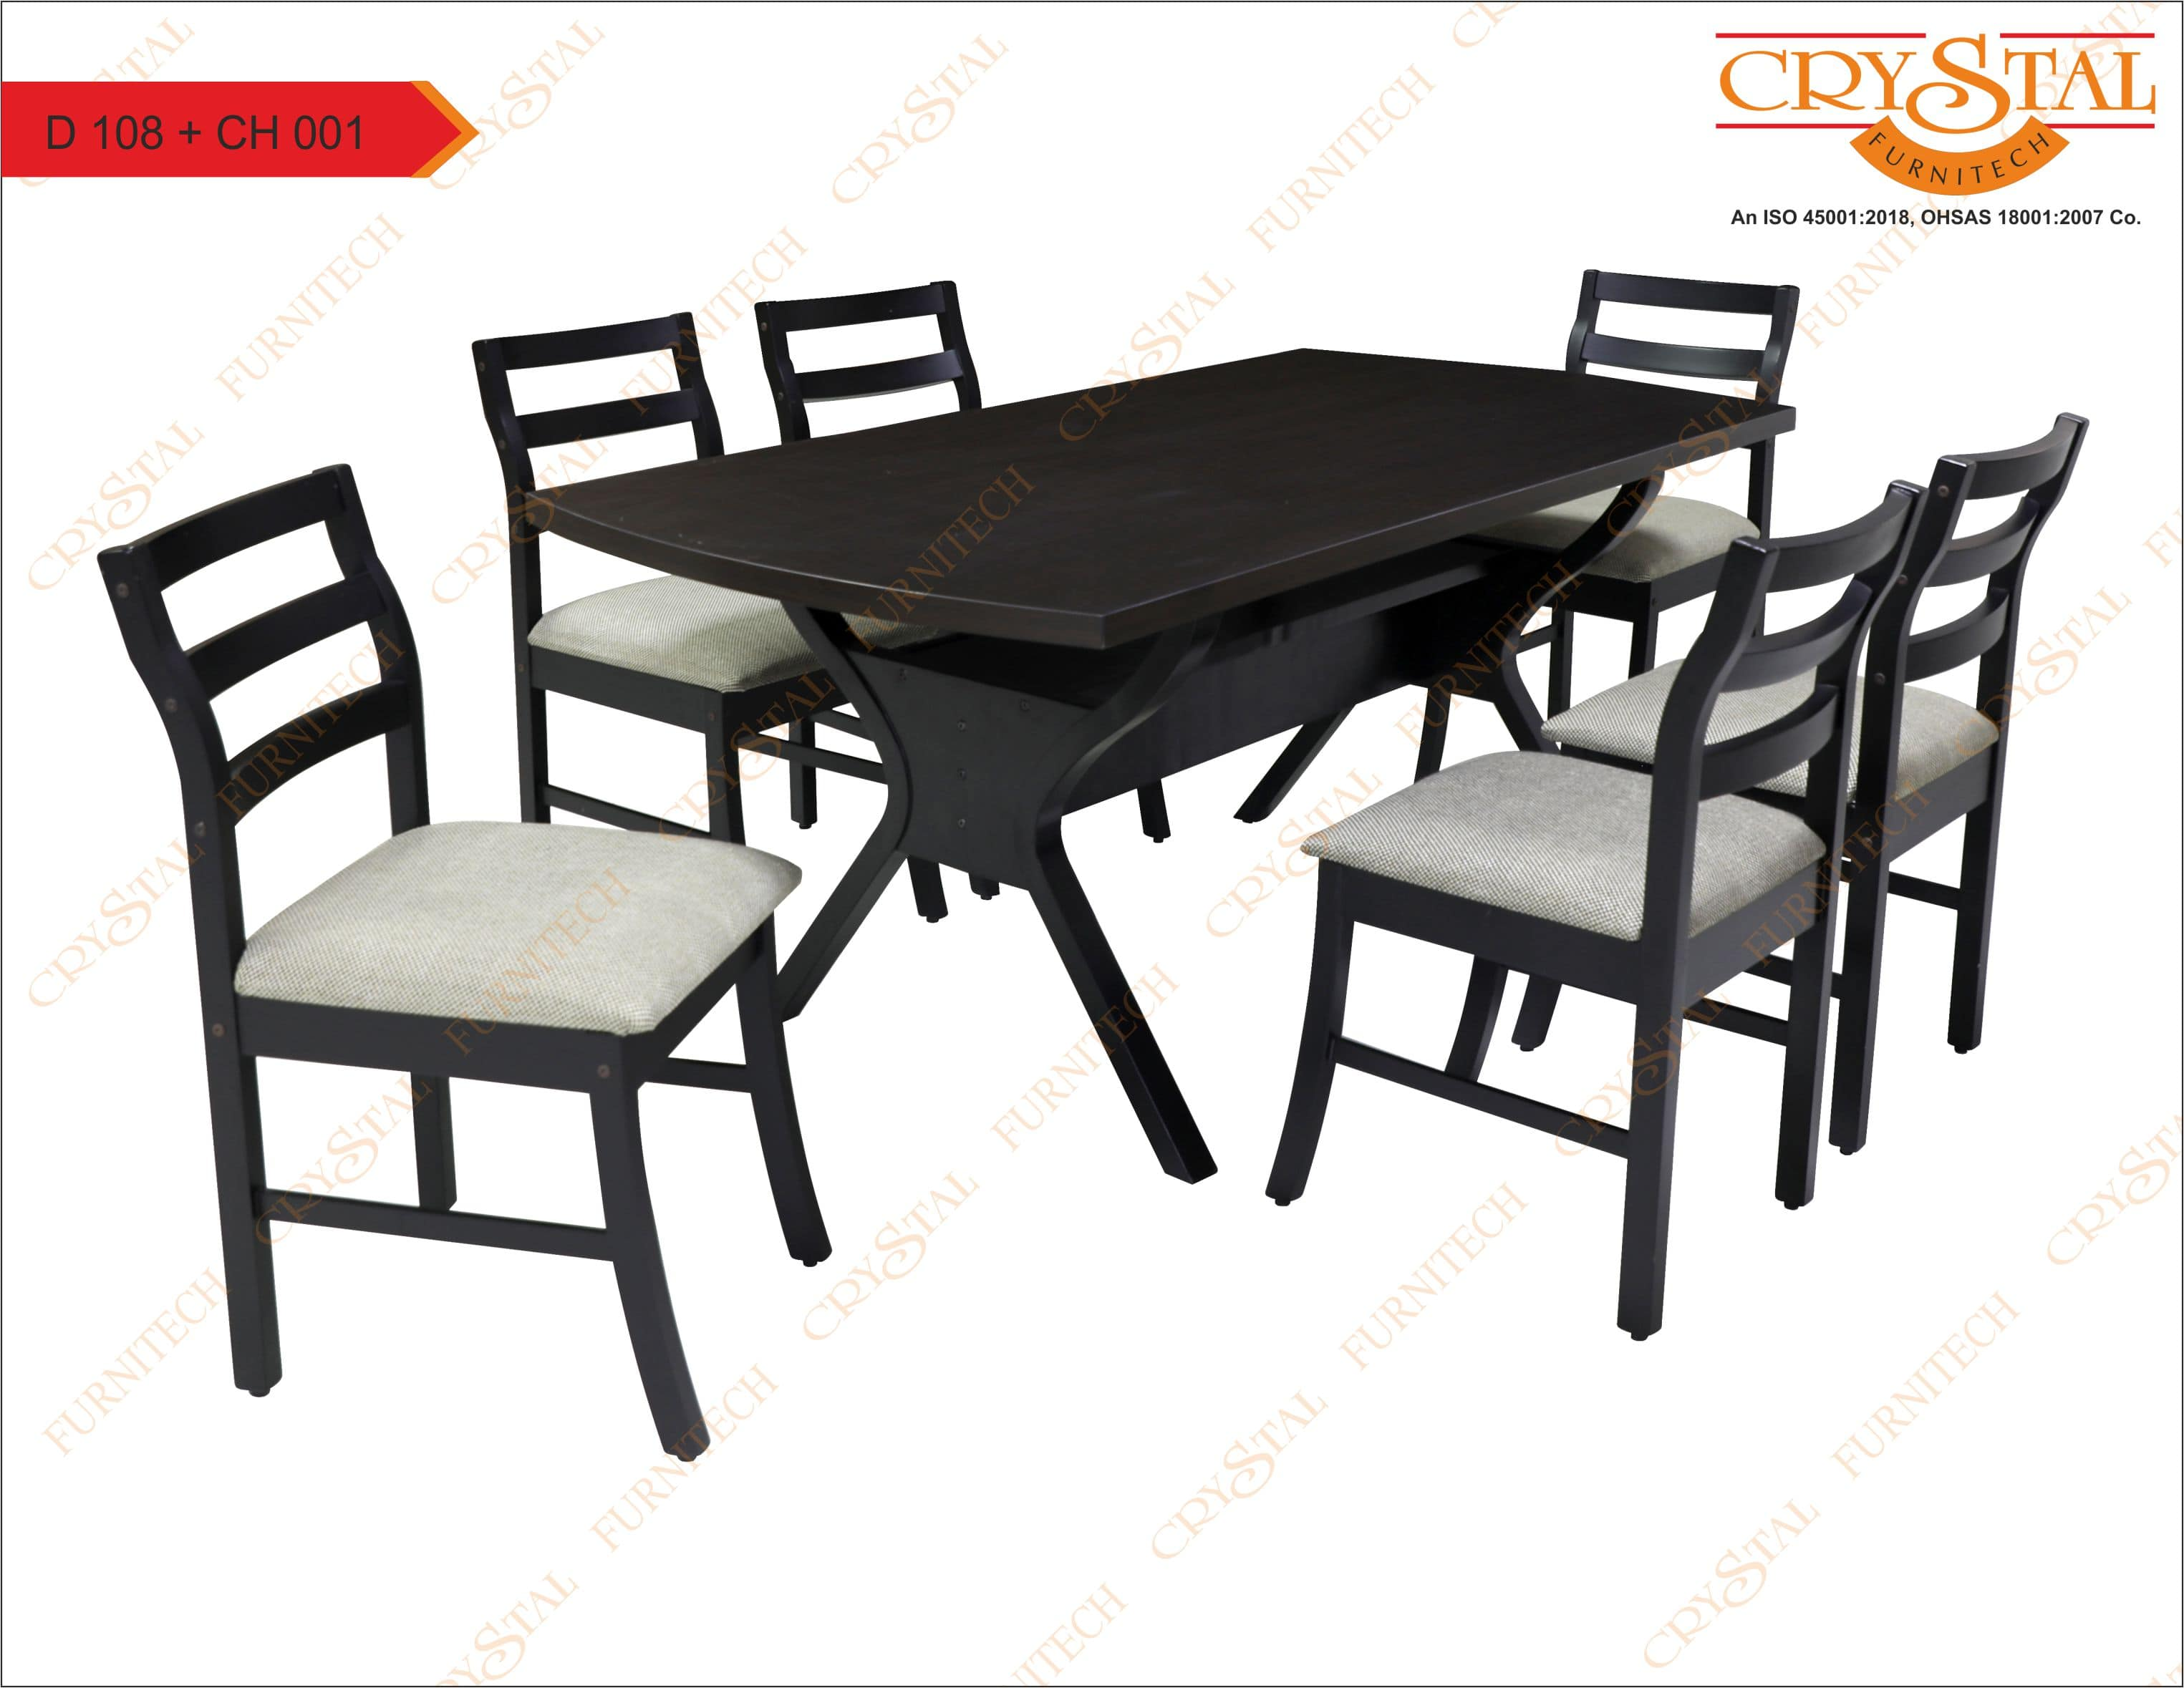 images/products/Dinning-Set-Dining-Set-D-108+CH001_1569666609.jpg